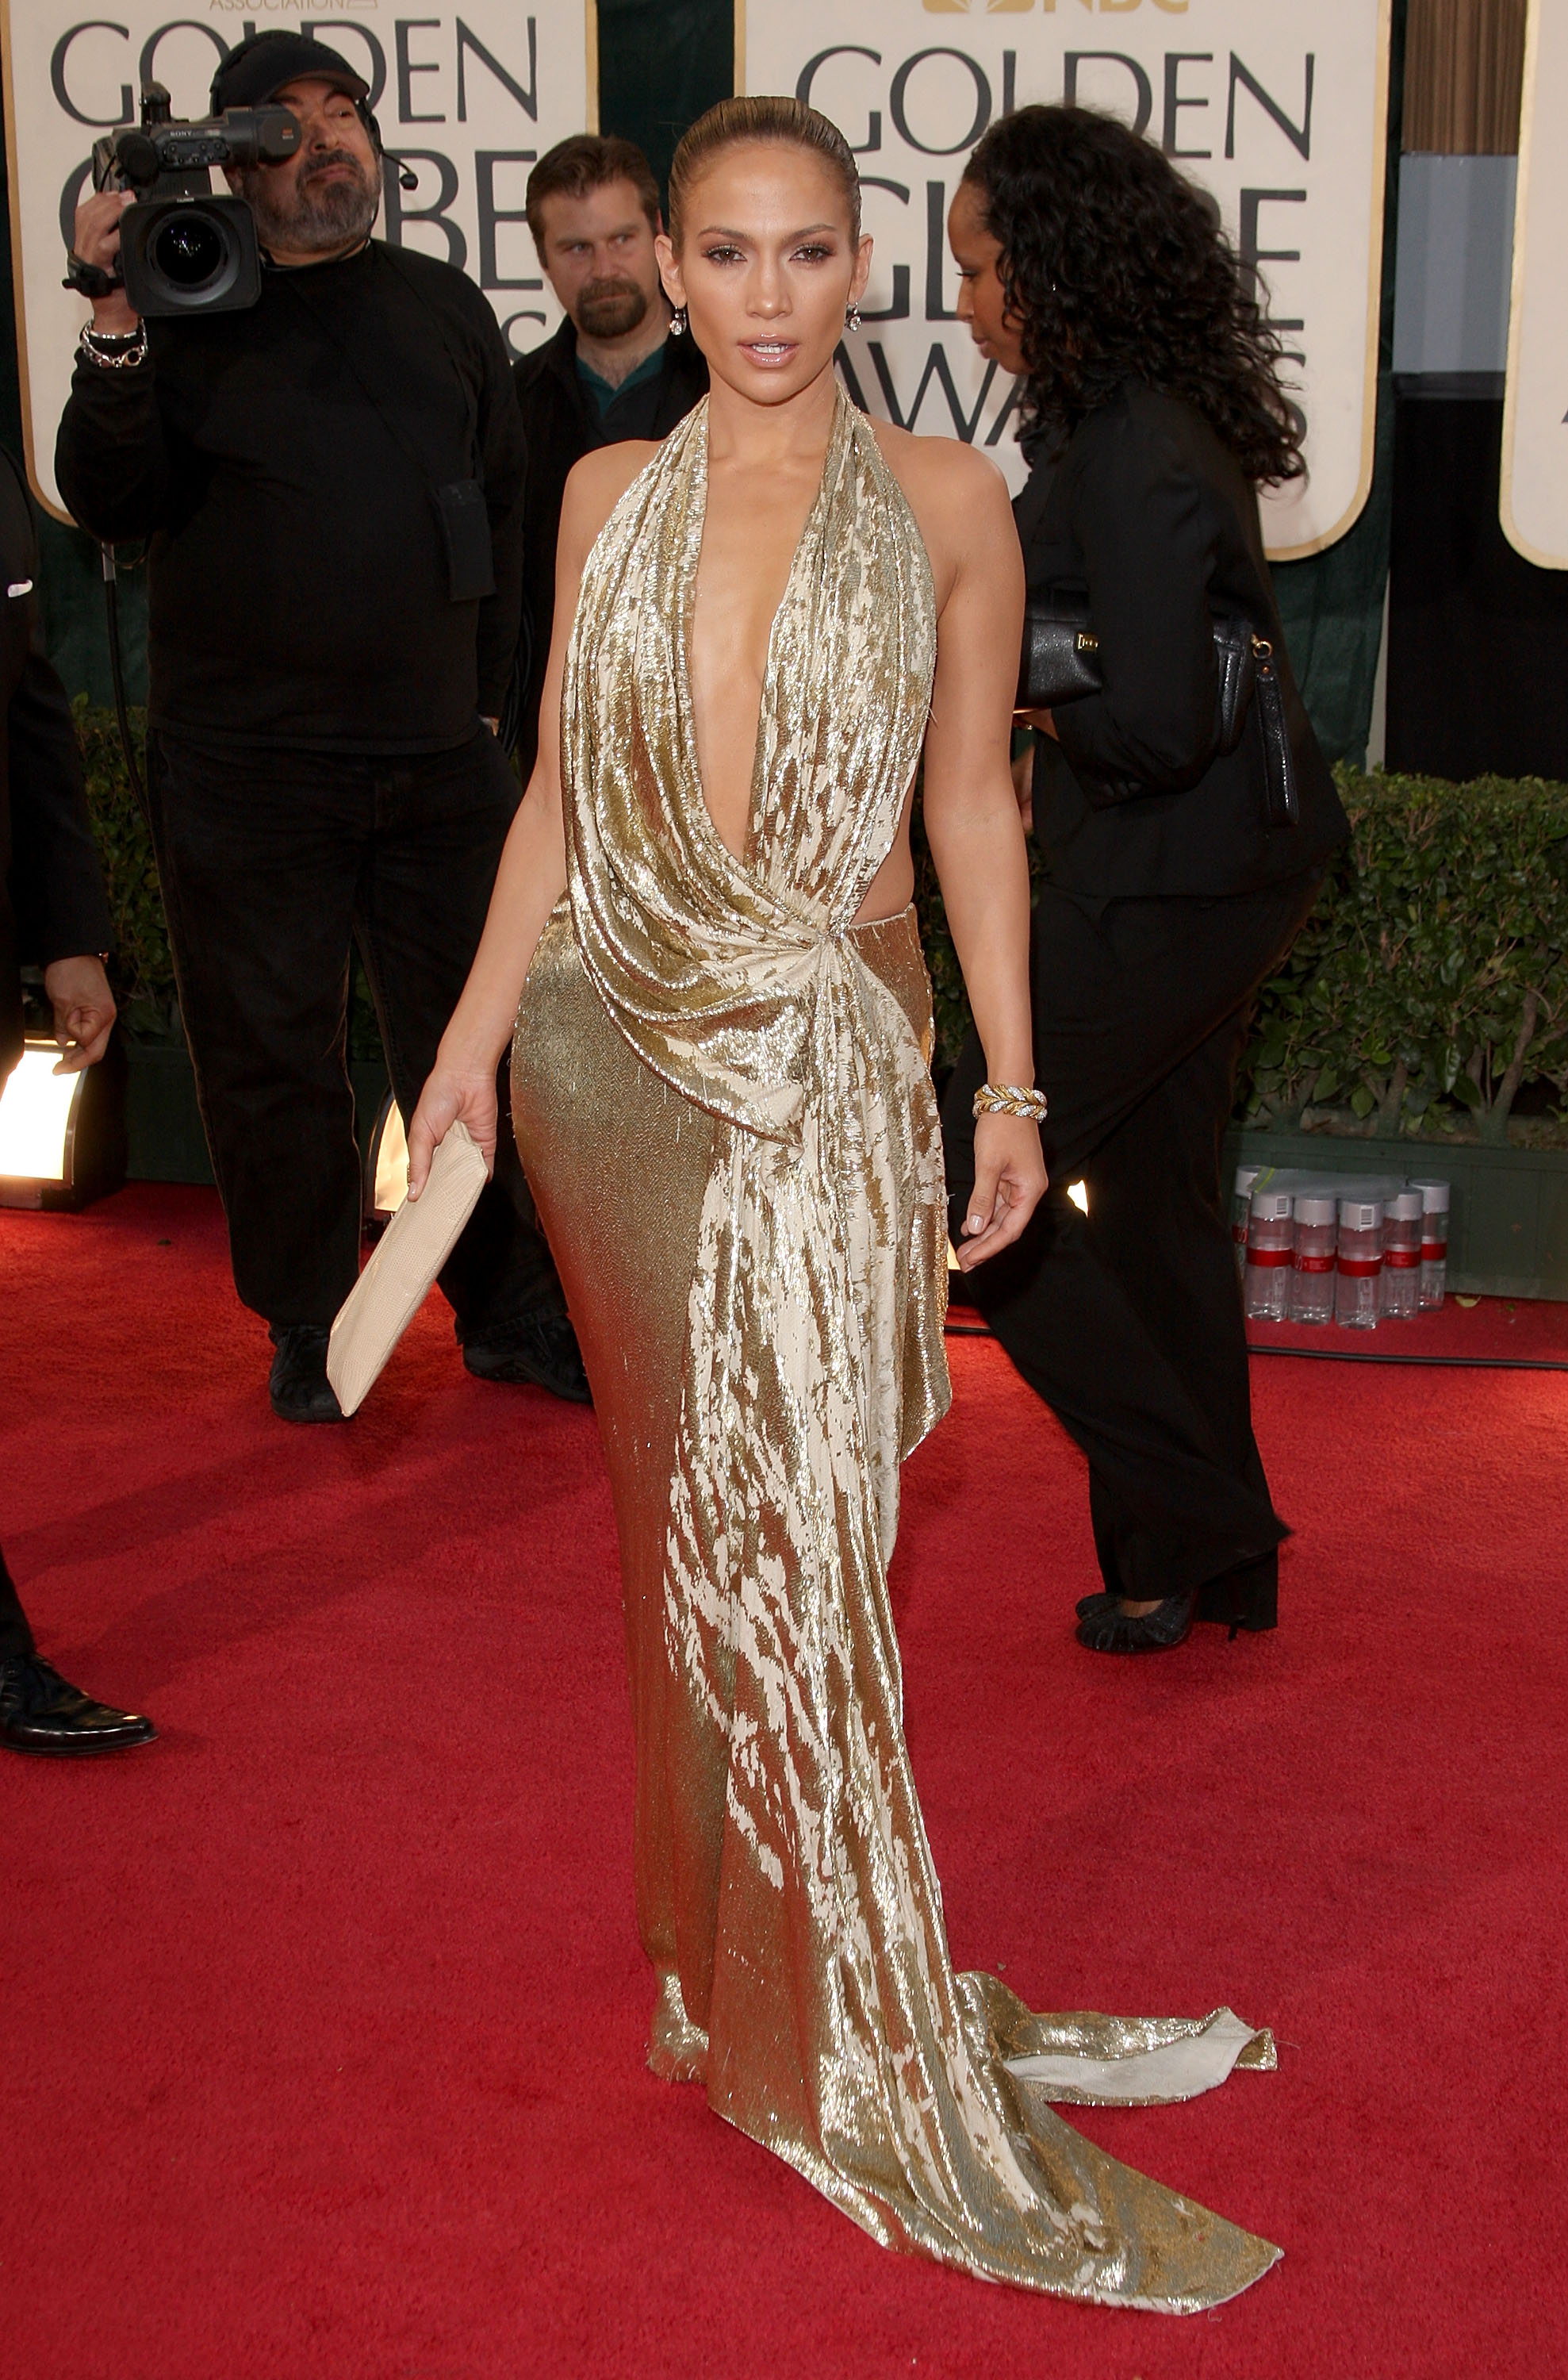 Jennifer Lopez arrives at the 66th Annual Golden Globe Awards held at the Beverly Hilton Hotel on January 11, 2009 in Beverly Hills, California.